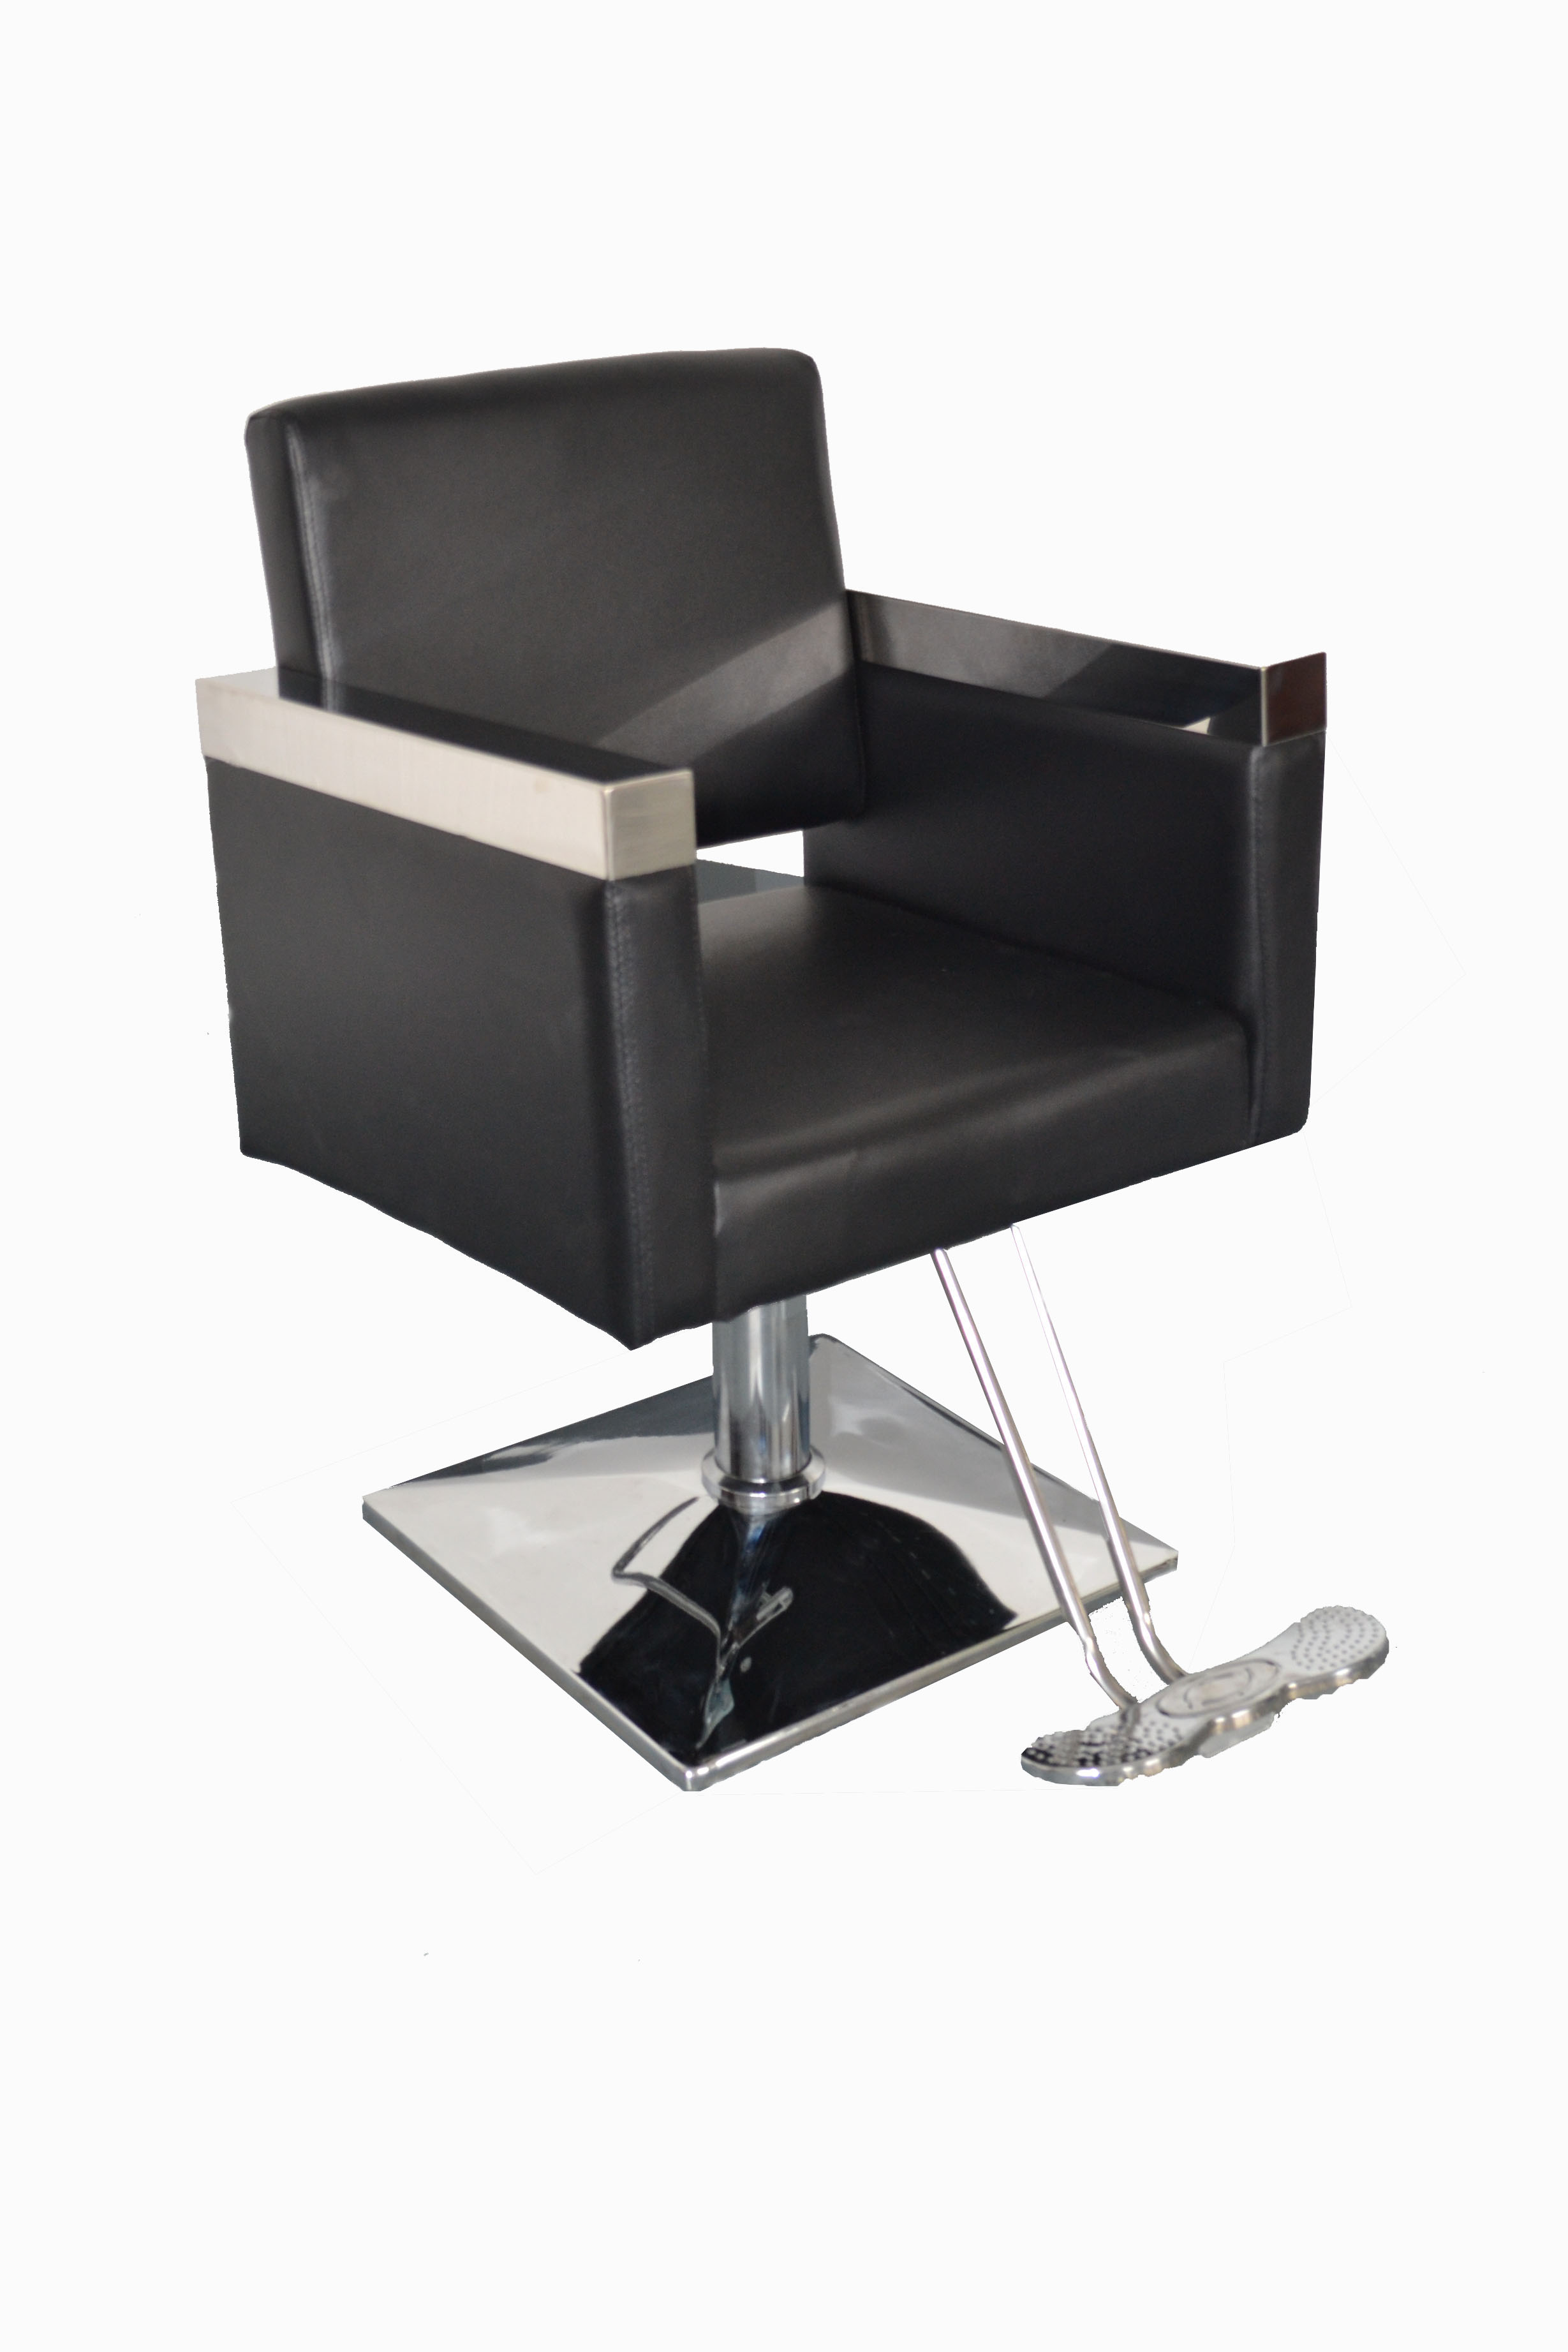 Barberpub hydraulic barber chair salon styling beauty spa for Hydraulic chairs beauty salon